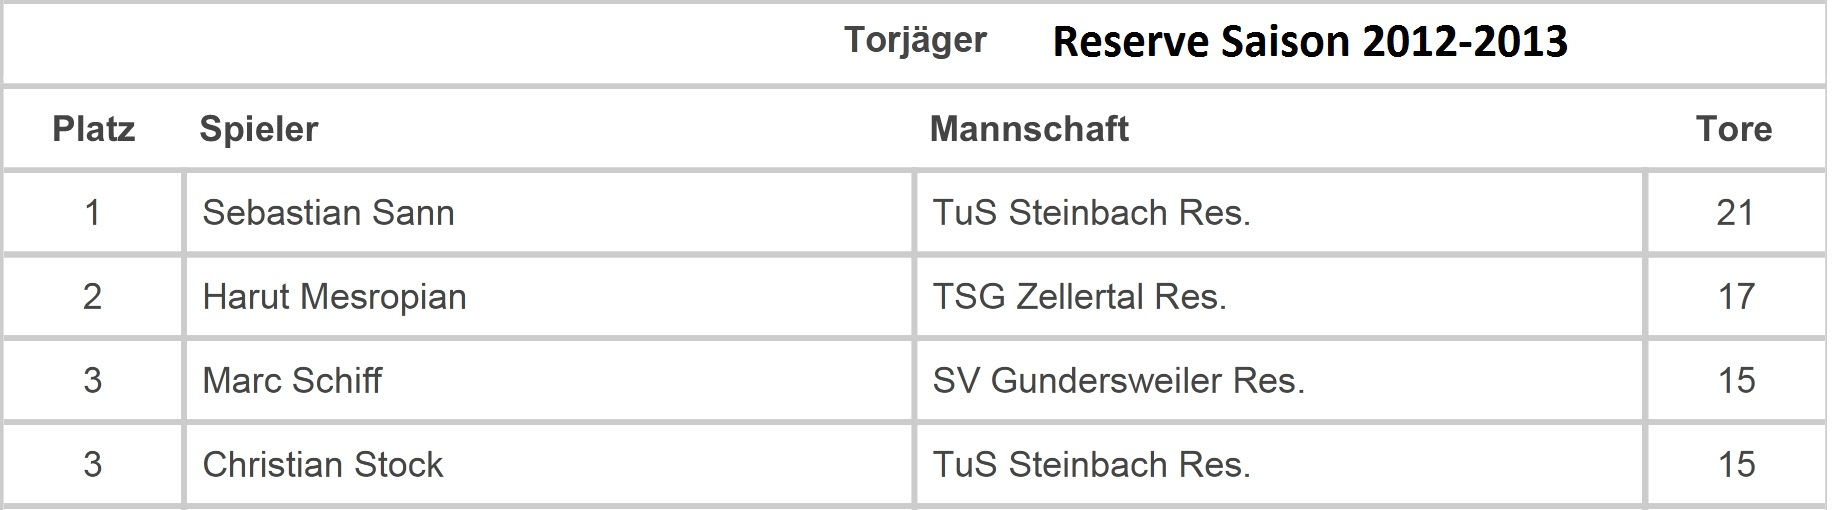 torjaeger res 2012 13